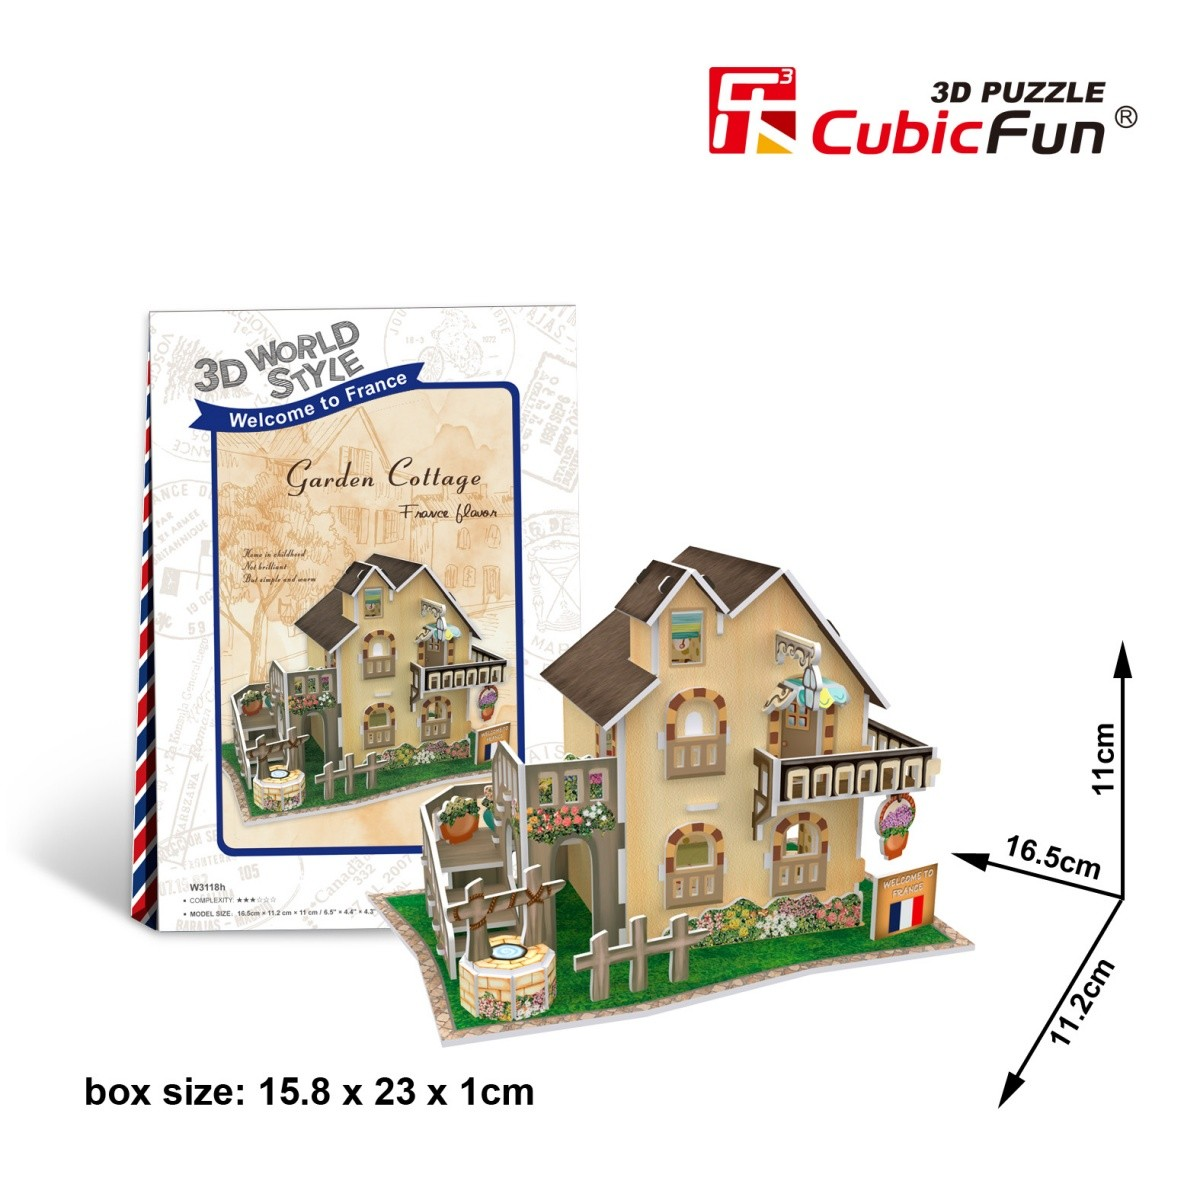 cubic-fun-3d-puzzle-world-style-welcome-to-france-36-teile-puzzle-cubic-fun-w3118h